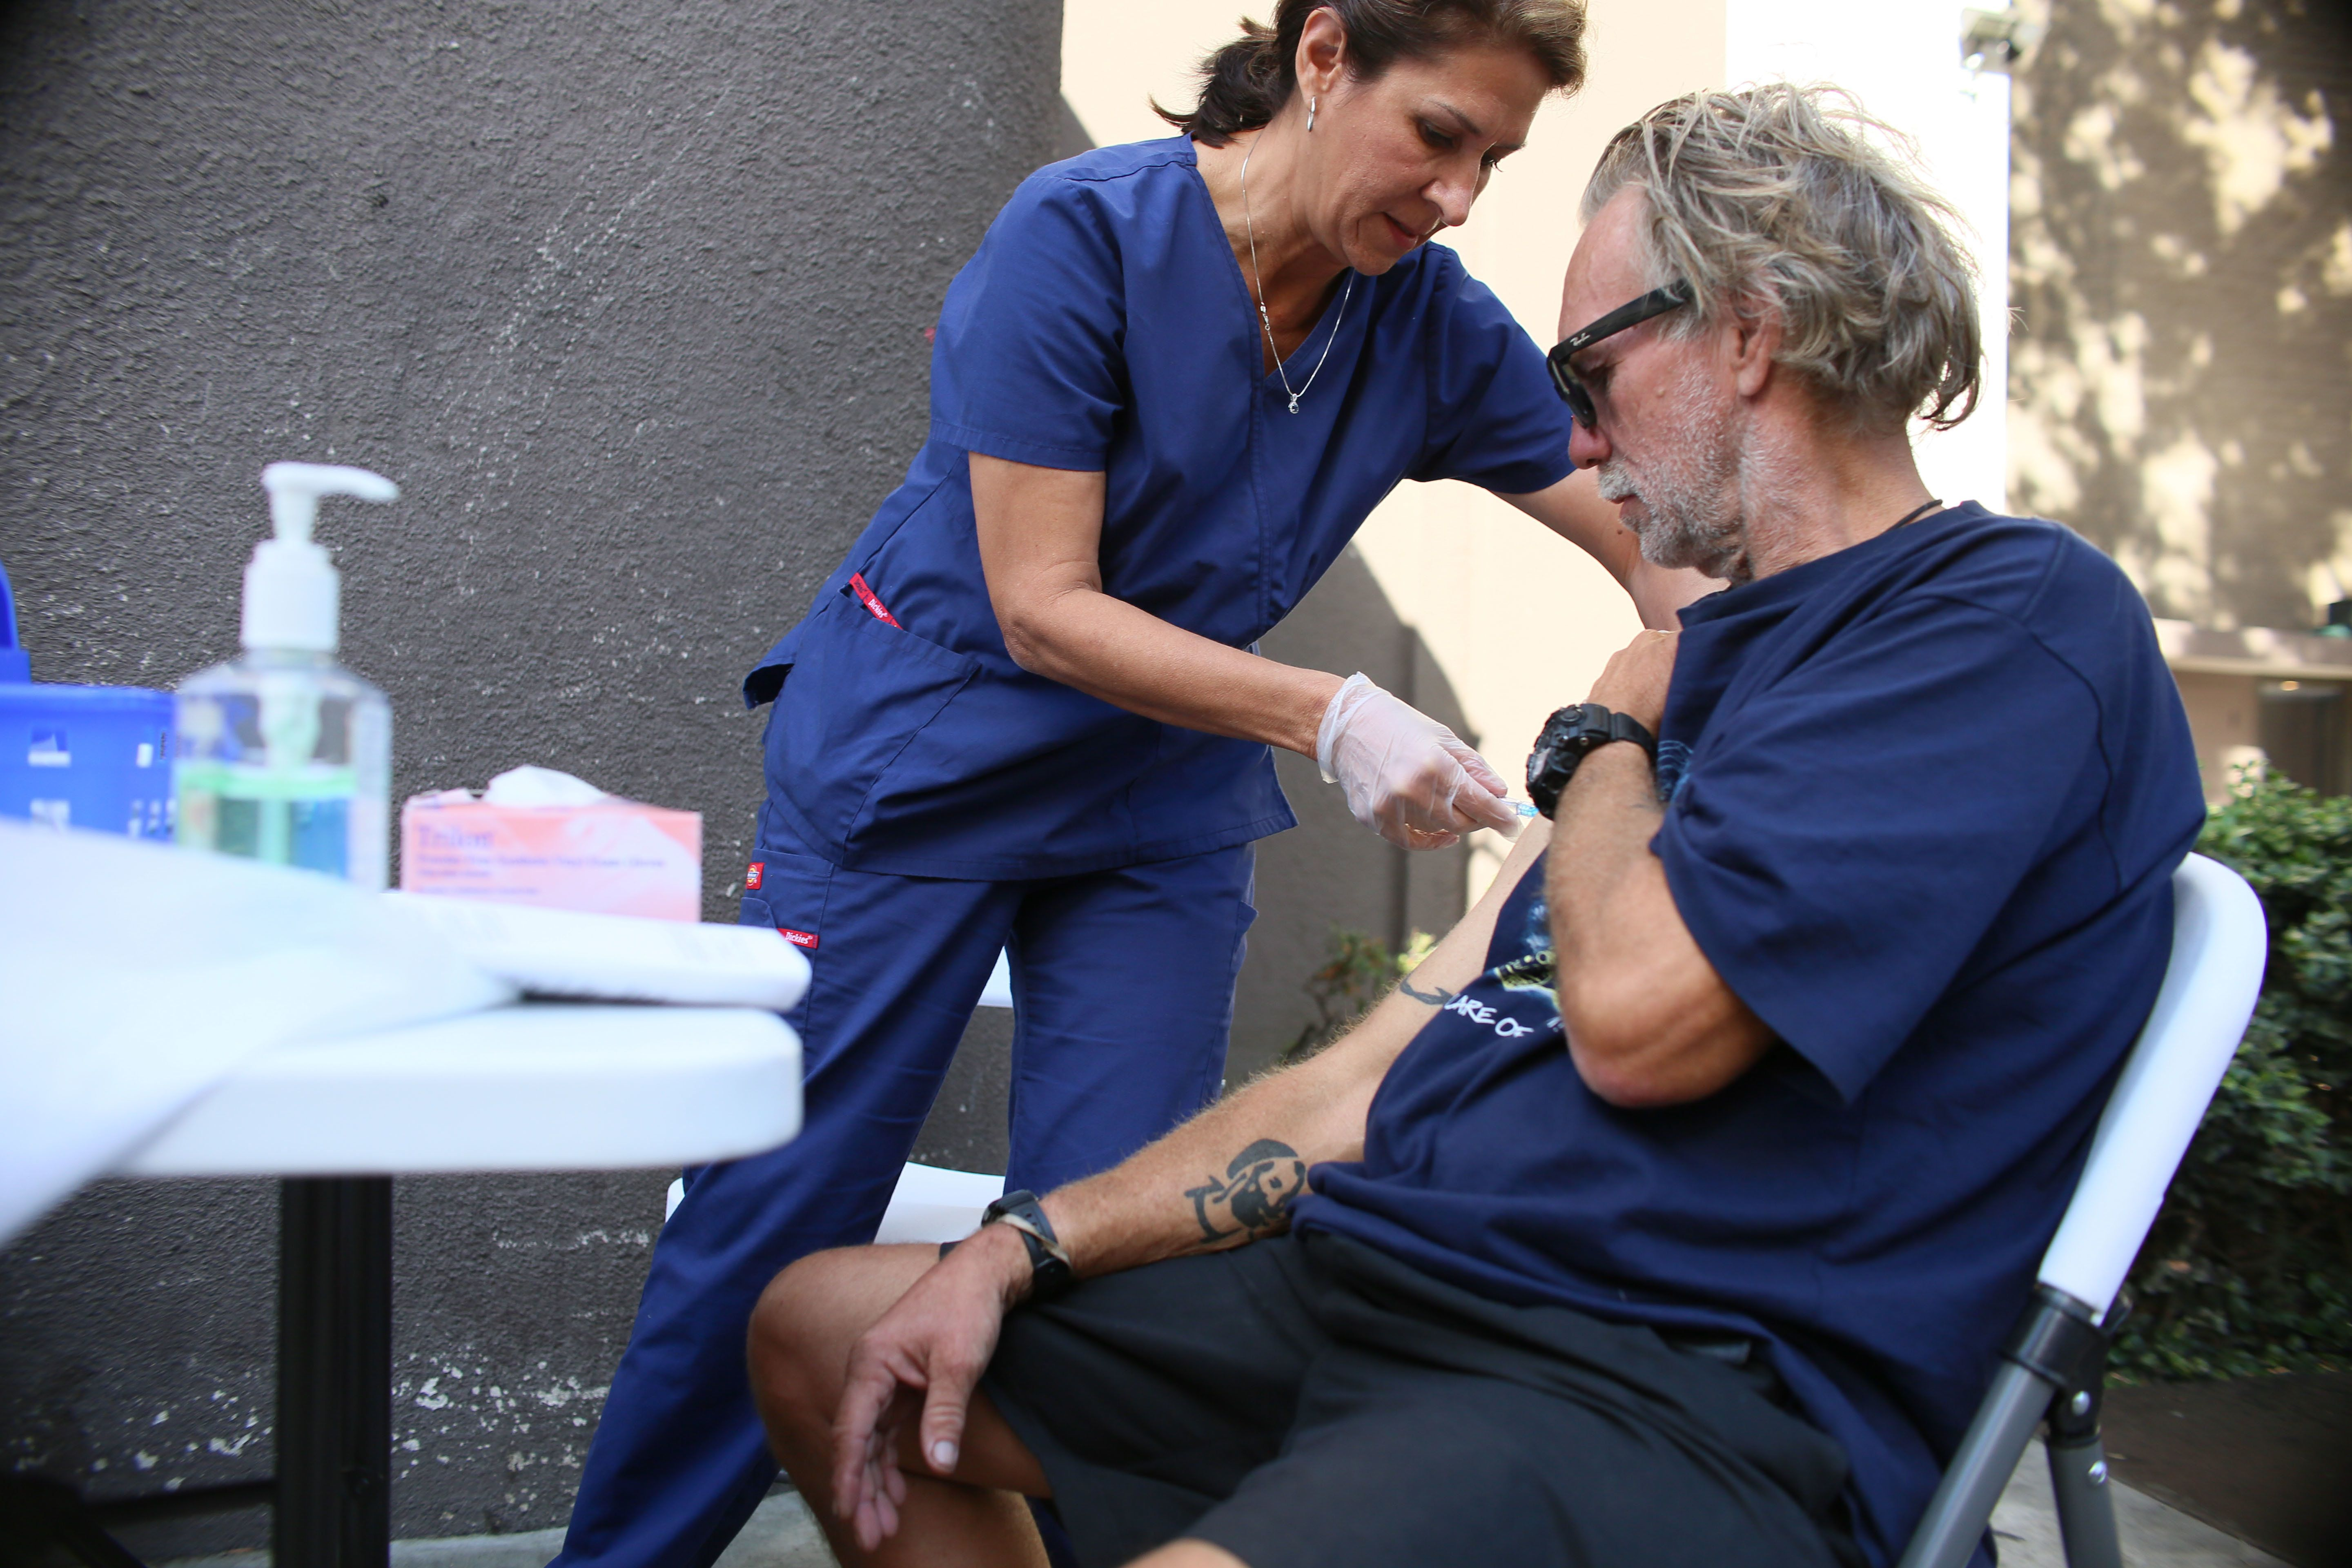 Paulina Bobenrieth a nurse with the HHSA Public Health dept. gives a Hepatitis A vaccine to a Homeless person in Downtown San Diego, CA on Wednesday, October 4, 2017.  A Hepatitis A outbreak has killed numerous homeless people and sent hundreds to the hospital.(Photo by Sandy Huffaker for The Washington Post via Getty Images)